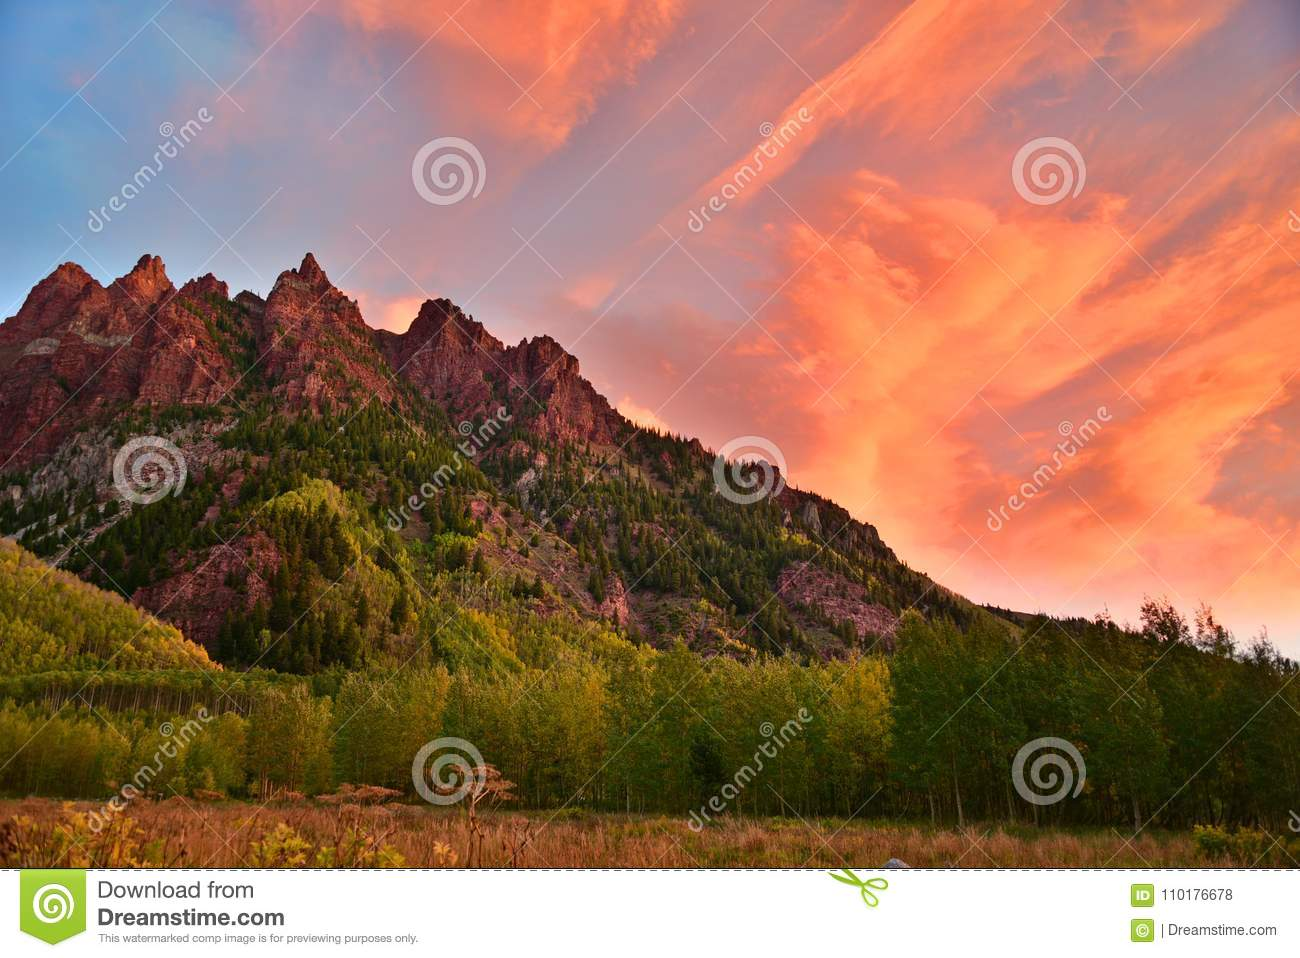 Image result for red mountain in sunrise